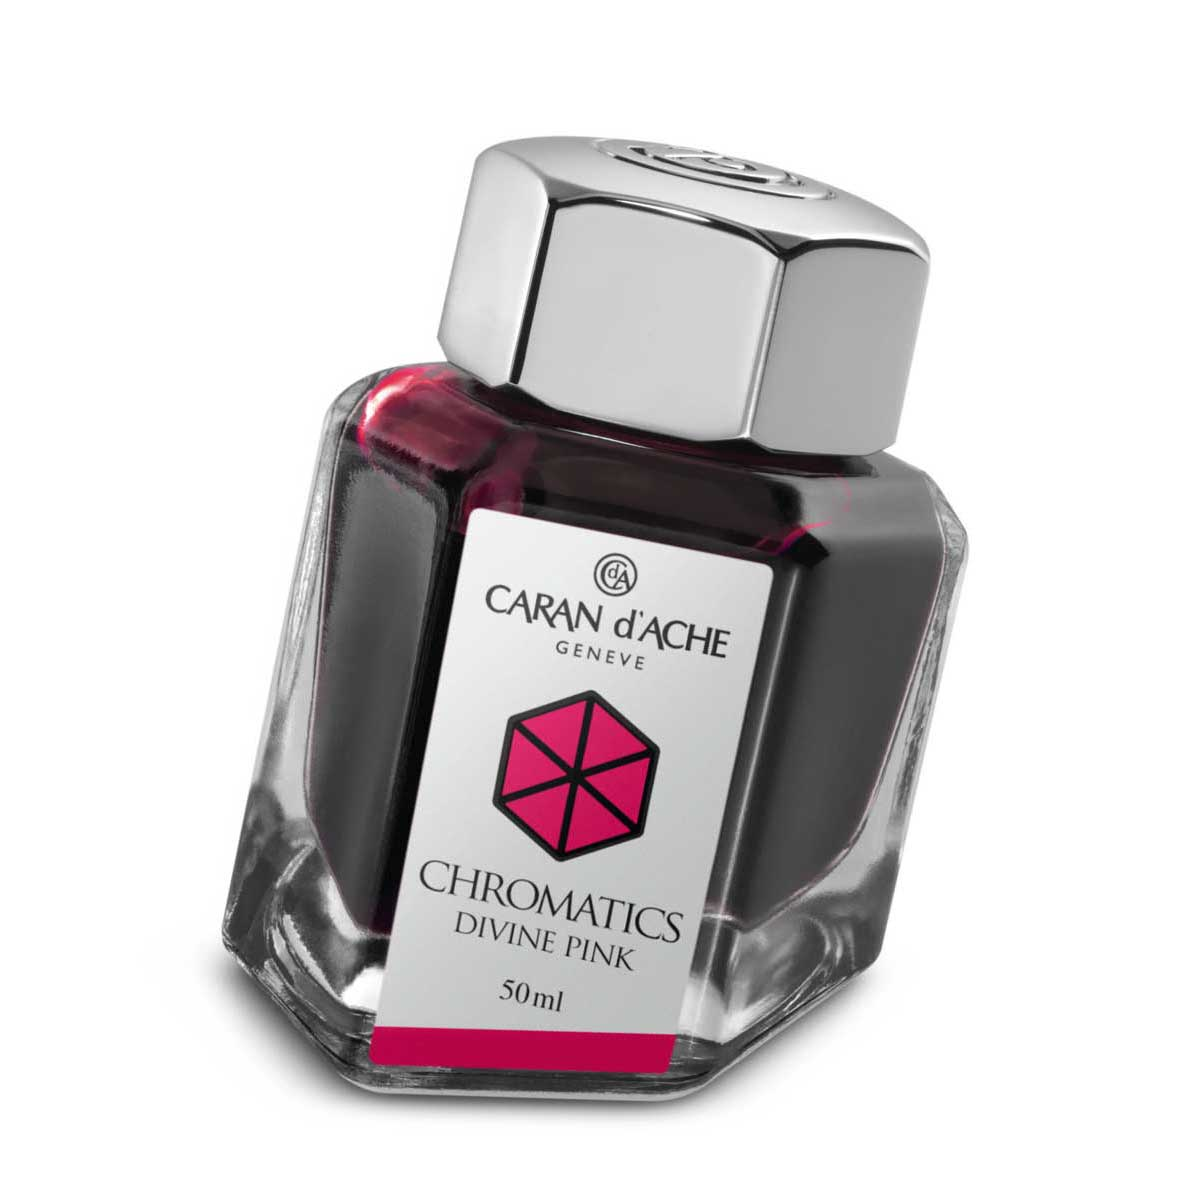 Caran d'Ache Chromatics Divine Pink Fountain Pen Inkwell